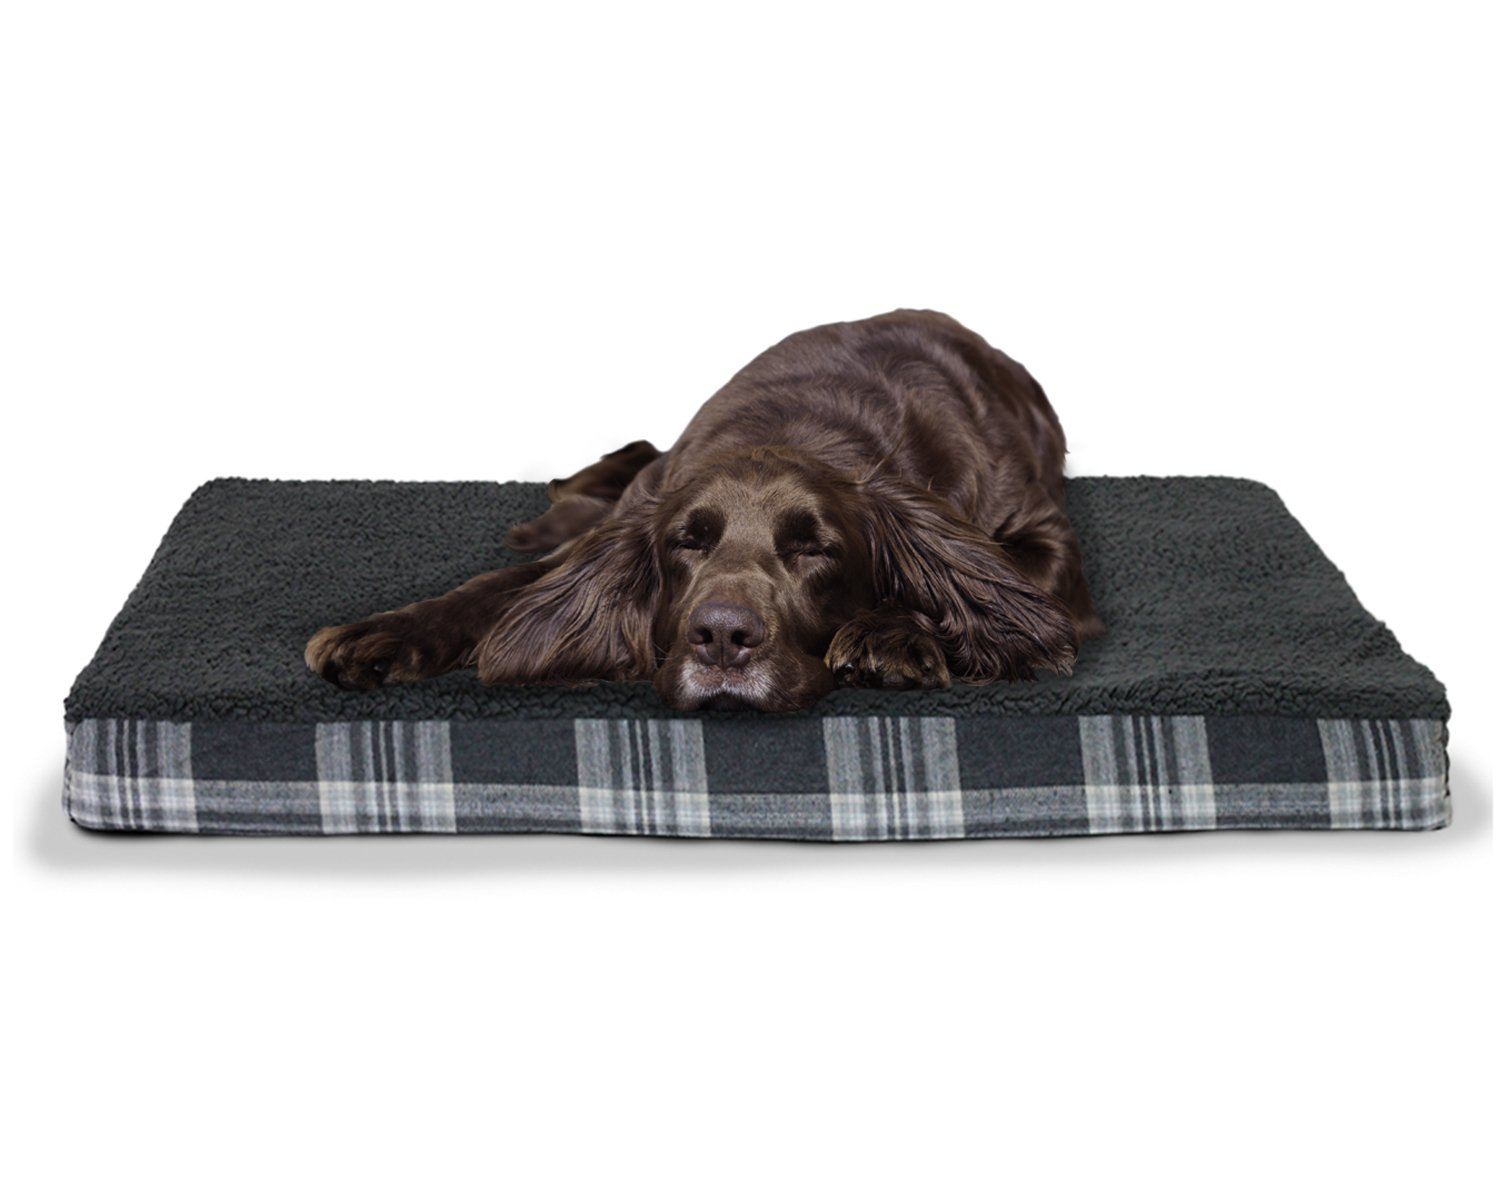 durable service Furhaven Faux Sheepskin and Plaid Orthopedic Dog Bed